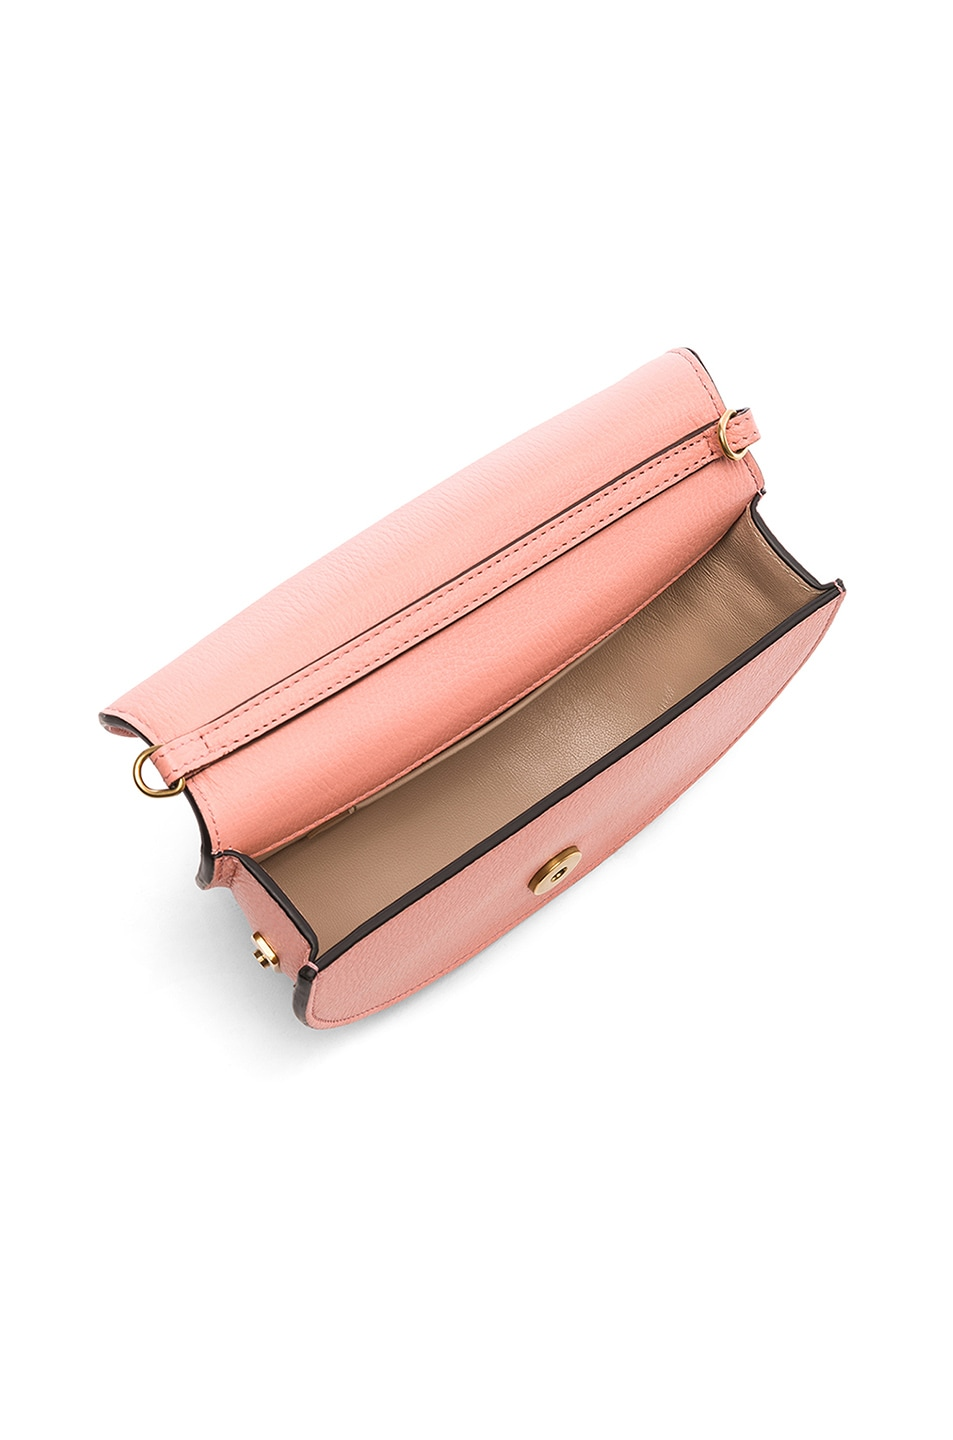 Image 5 of Chloe Small Nile Leather Minaudiere in Ideal Blush